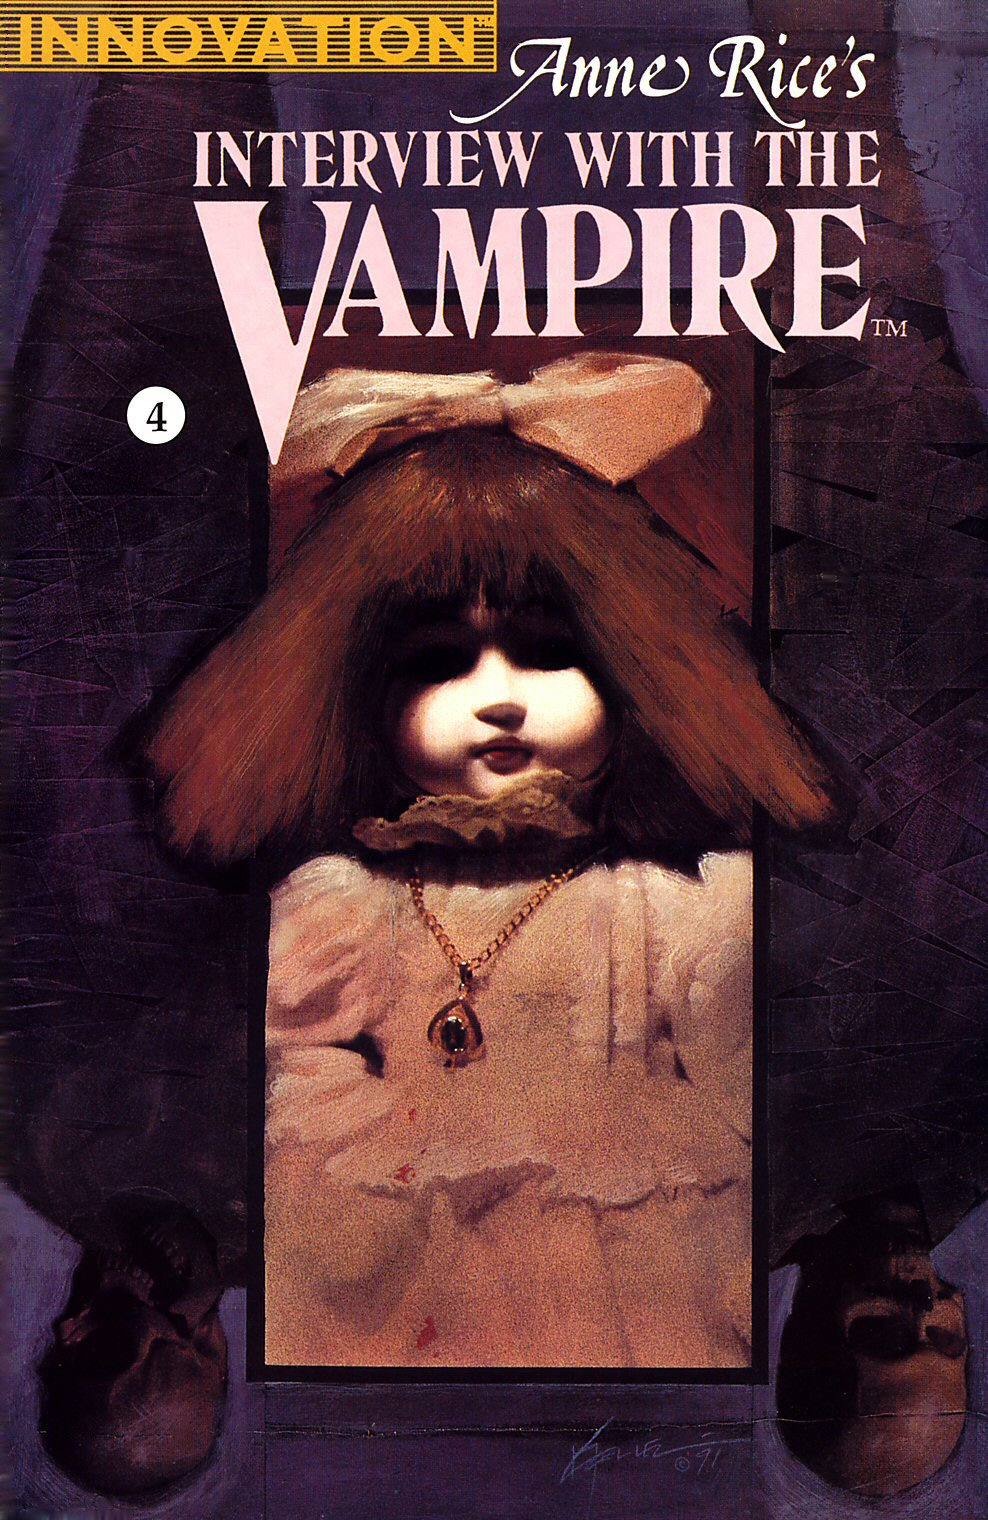 Read online Anne Rice's Interview with the Vampire comic -  Issue #4 - 1